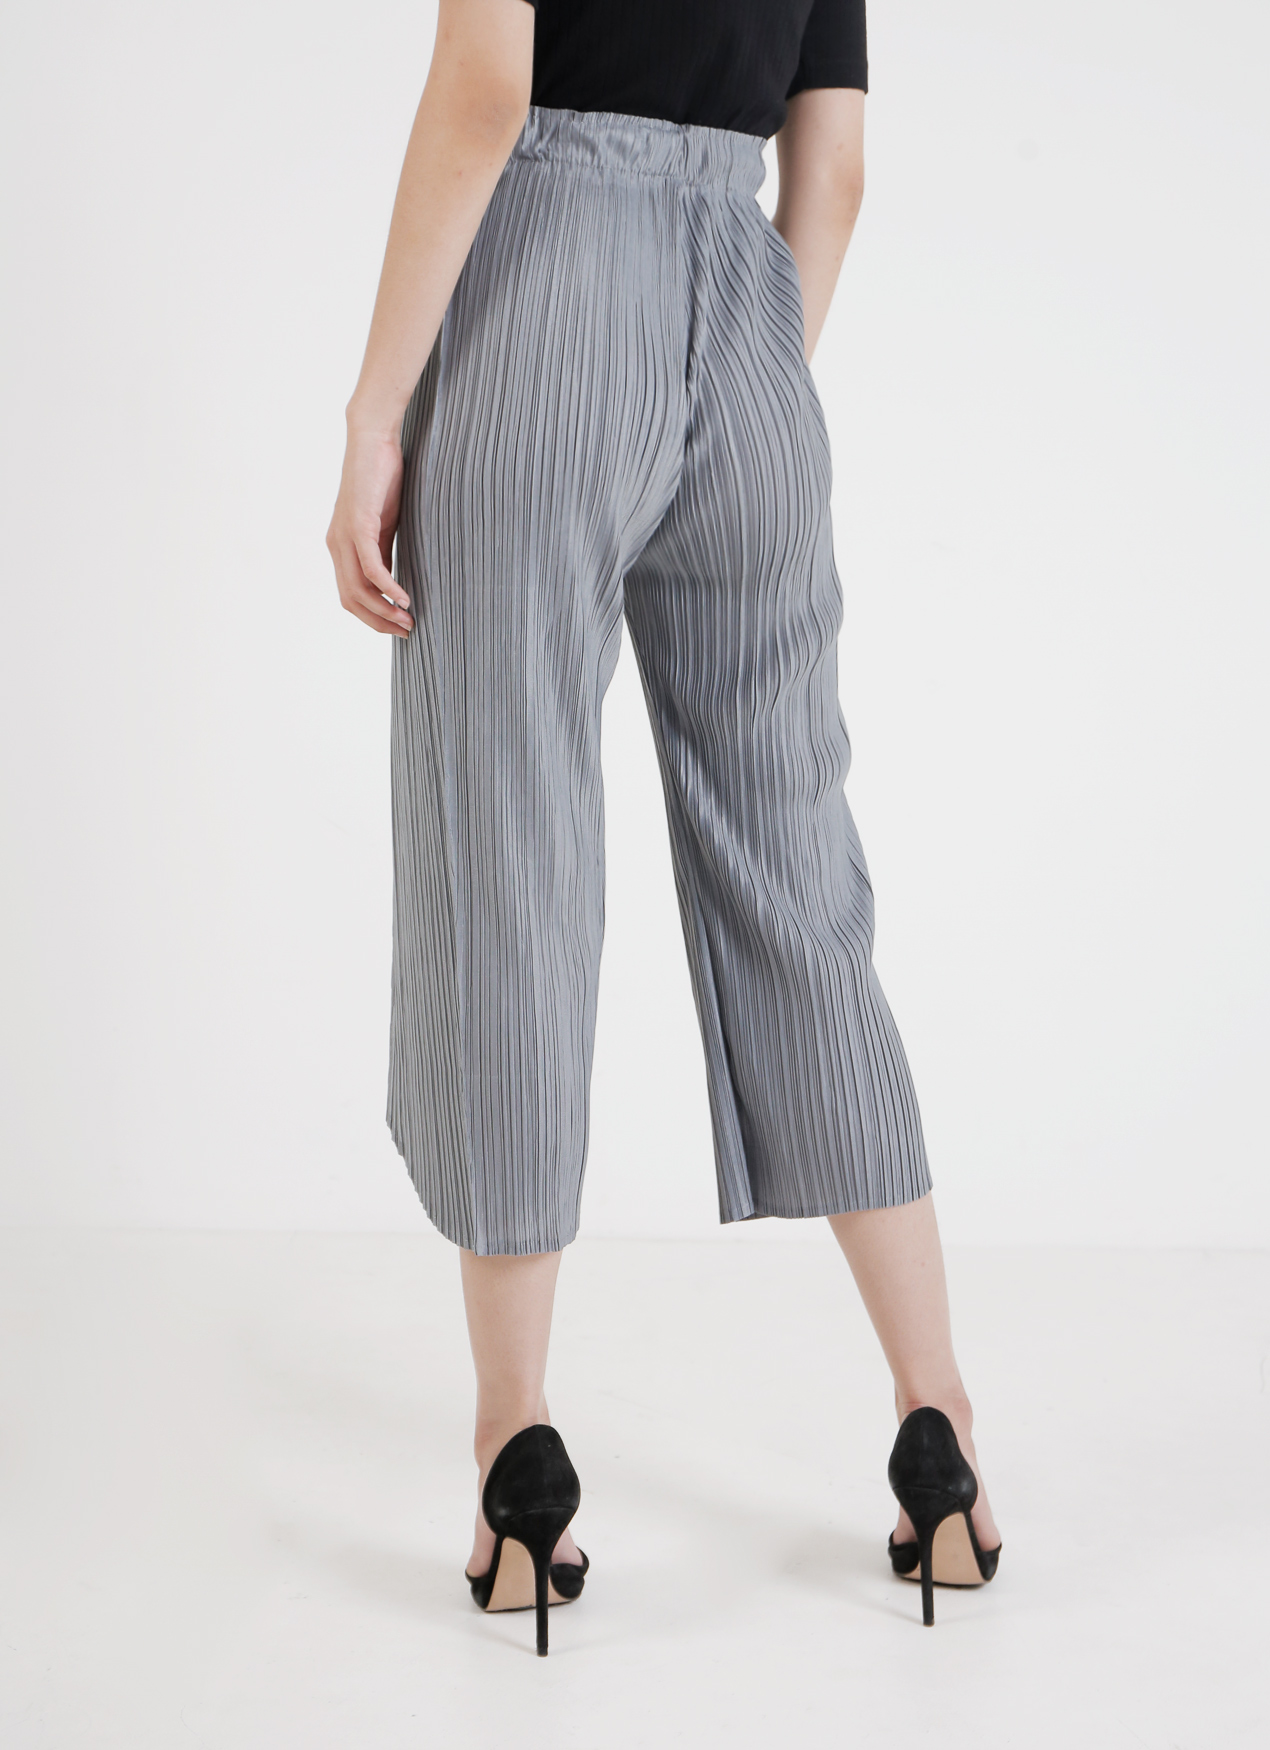 BOWN Nadia Pleated Pants - Gray